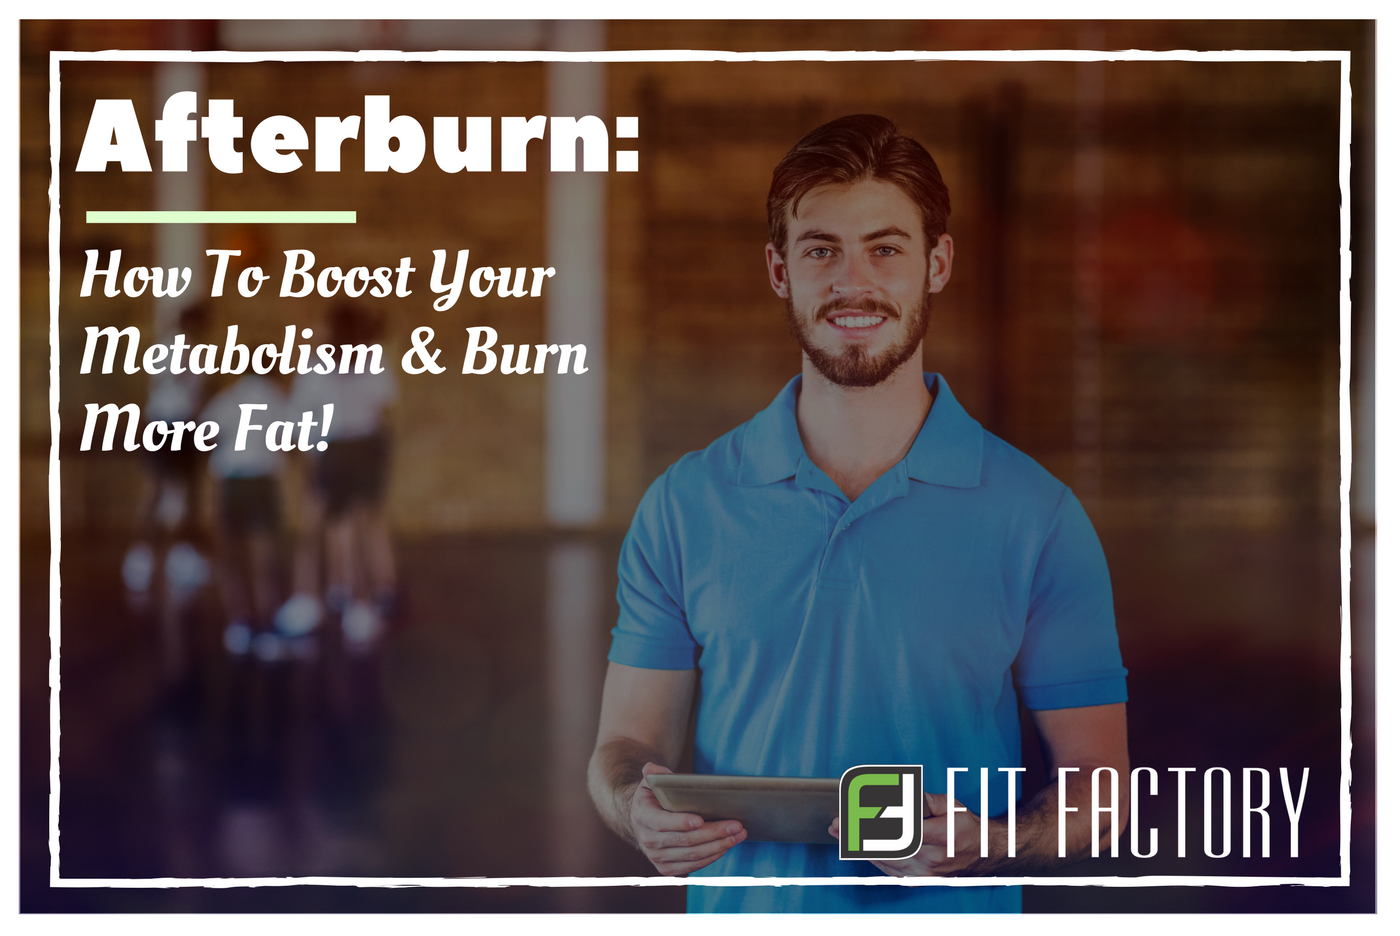 Afterburn: How To Boost Your Metabolism and Burn More Fat